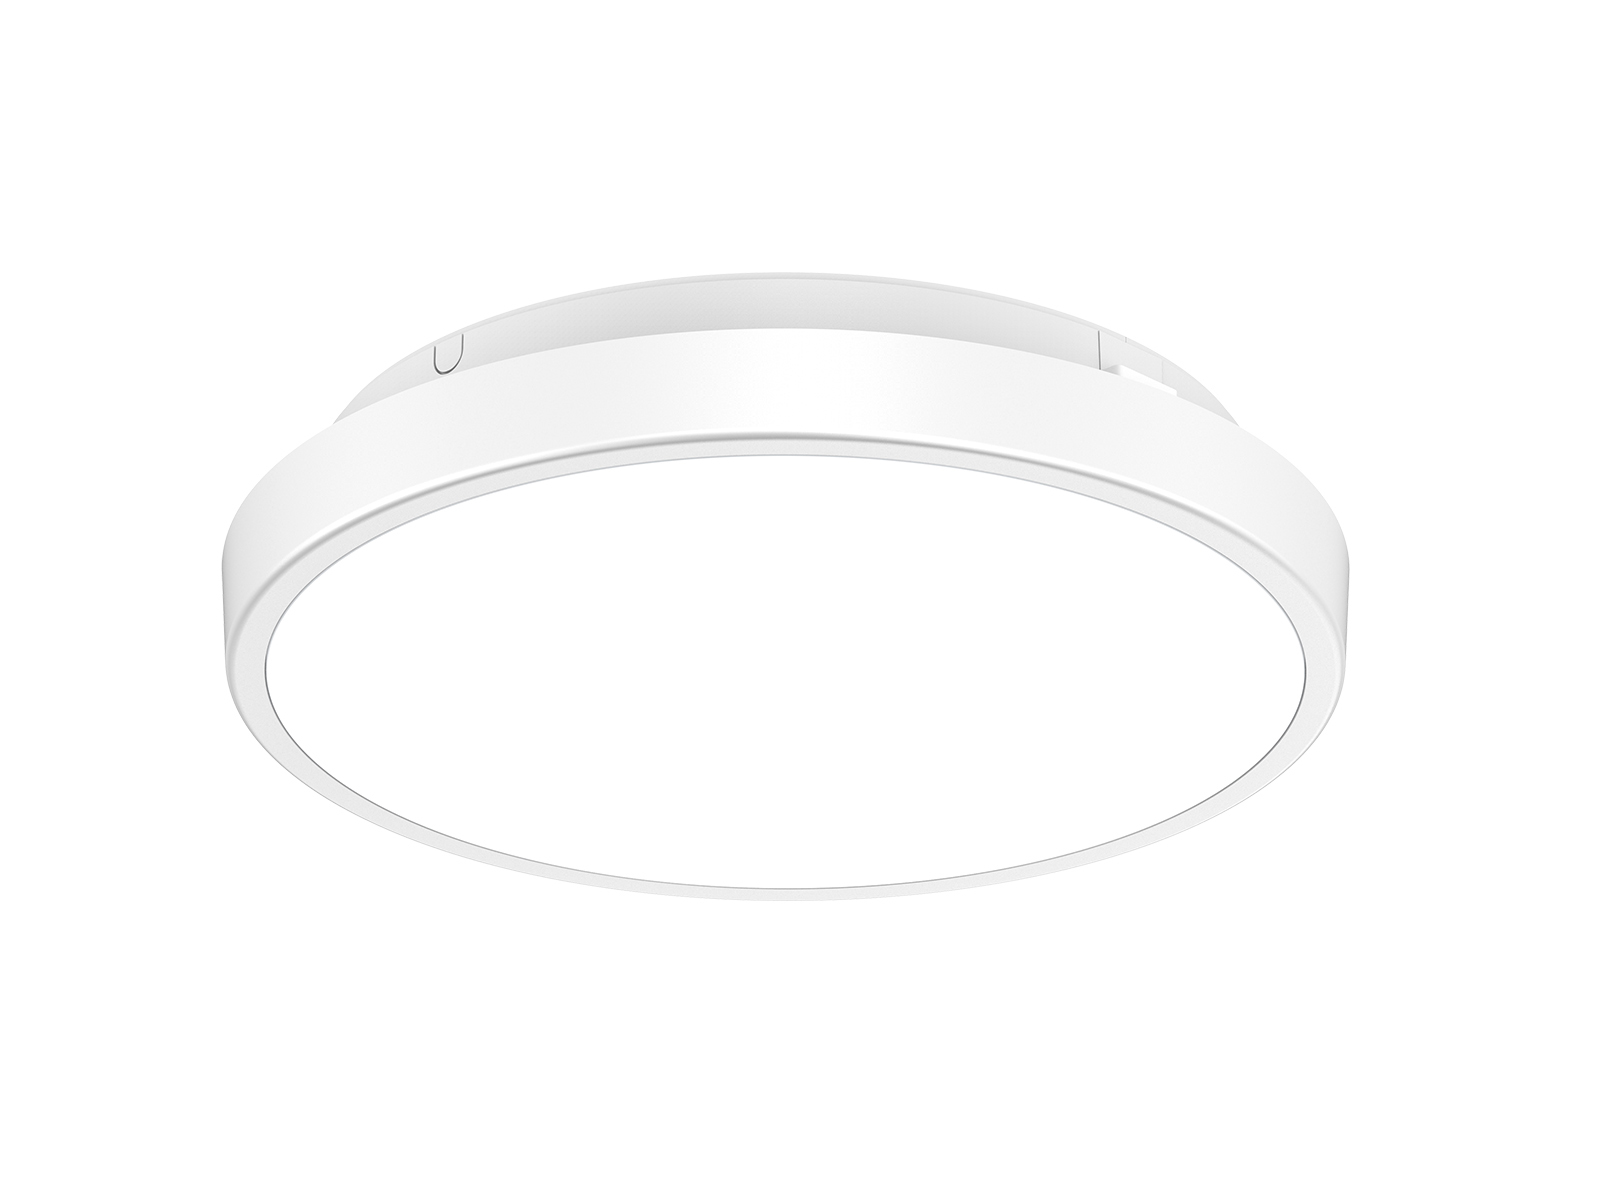 Al85 Cct Changebake Ip54 Thin Led Integrated Ceiling